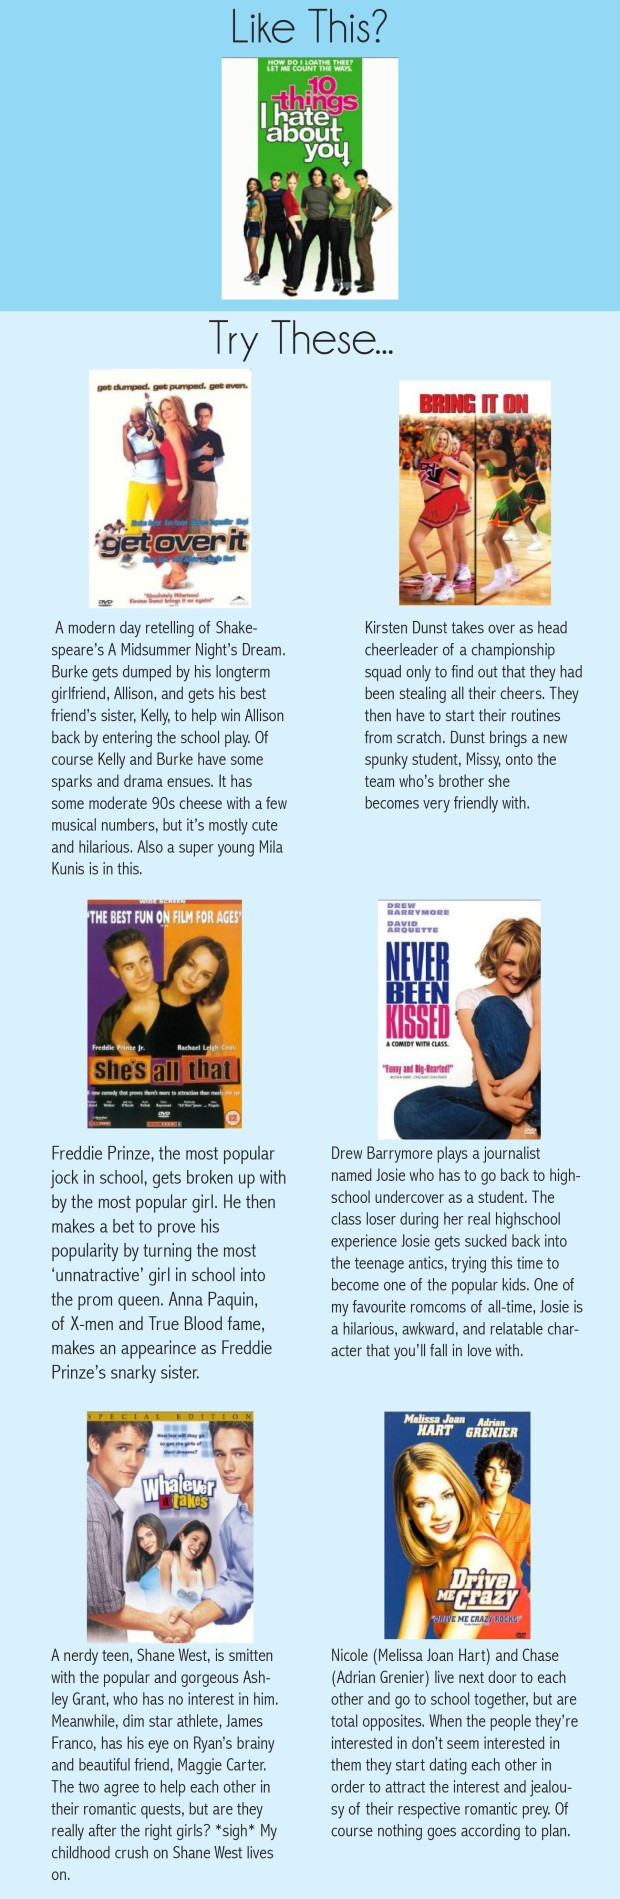 High school Rom Coms in the Late 90s and early 2000s